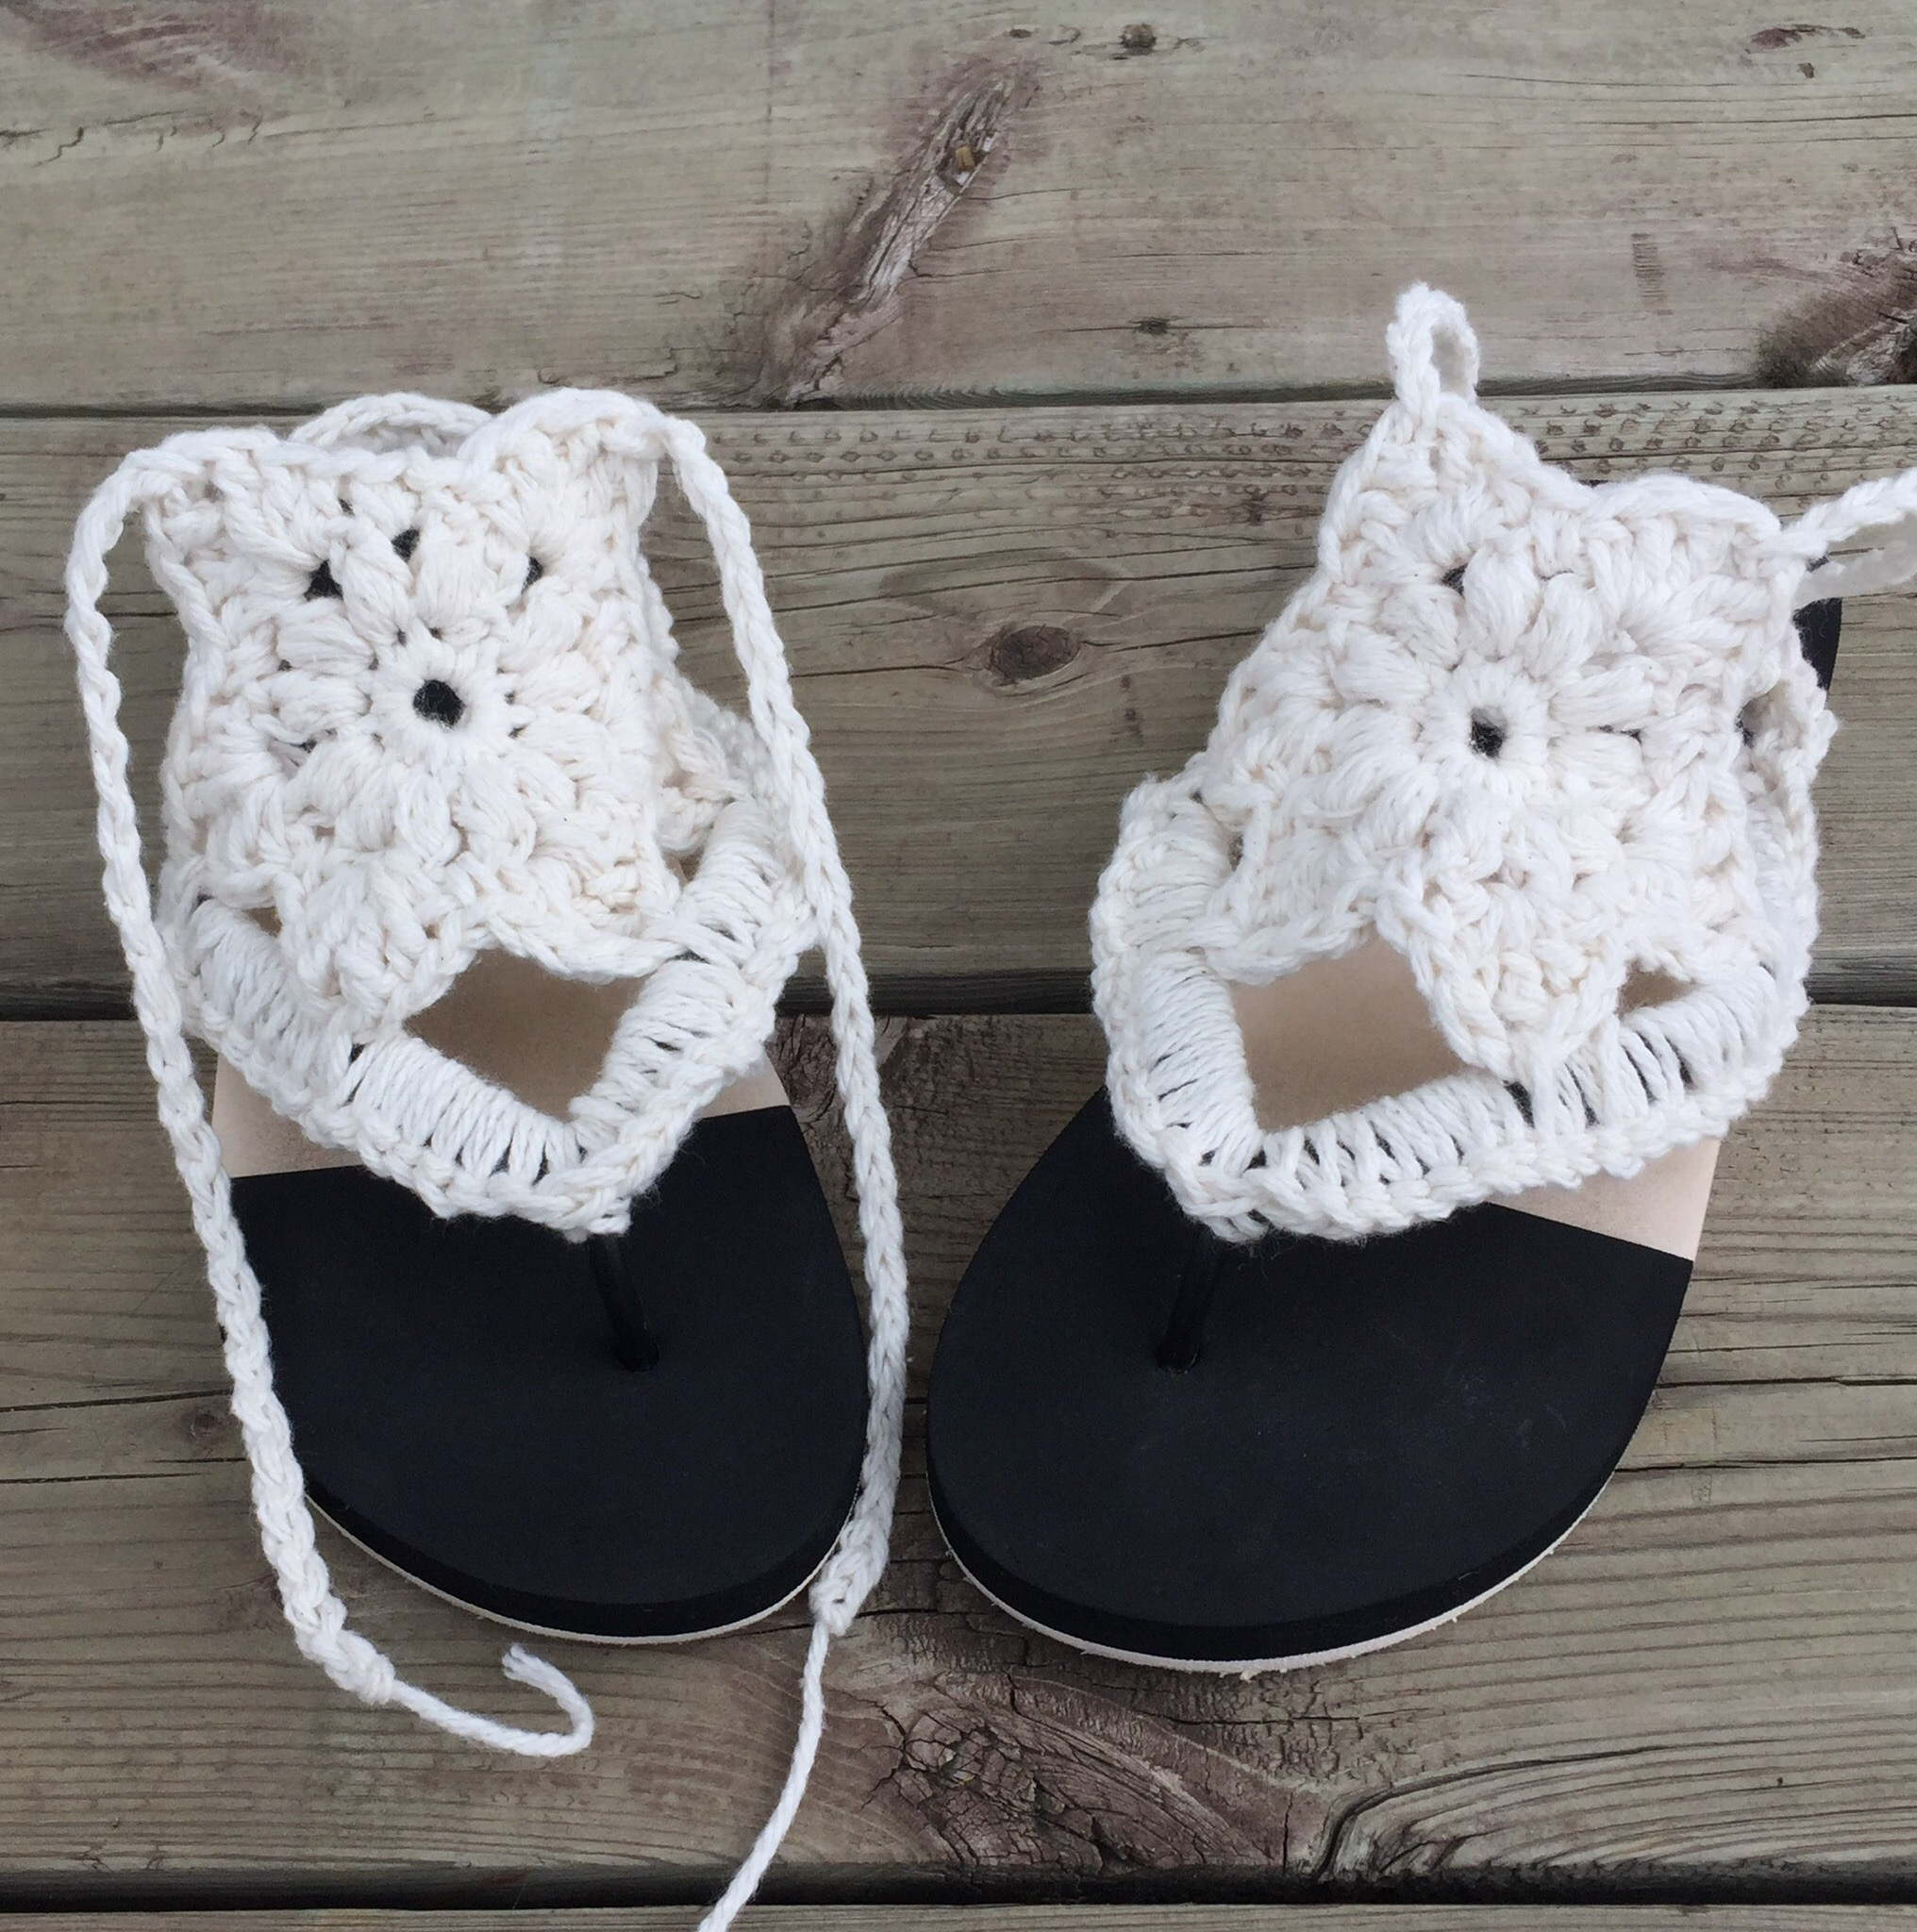 Natalie Summer Sandals Crochet Pattern Endless Crochet Creations